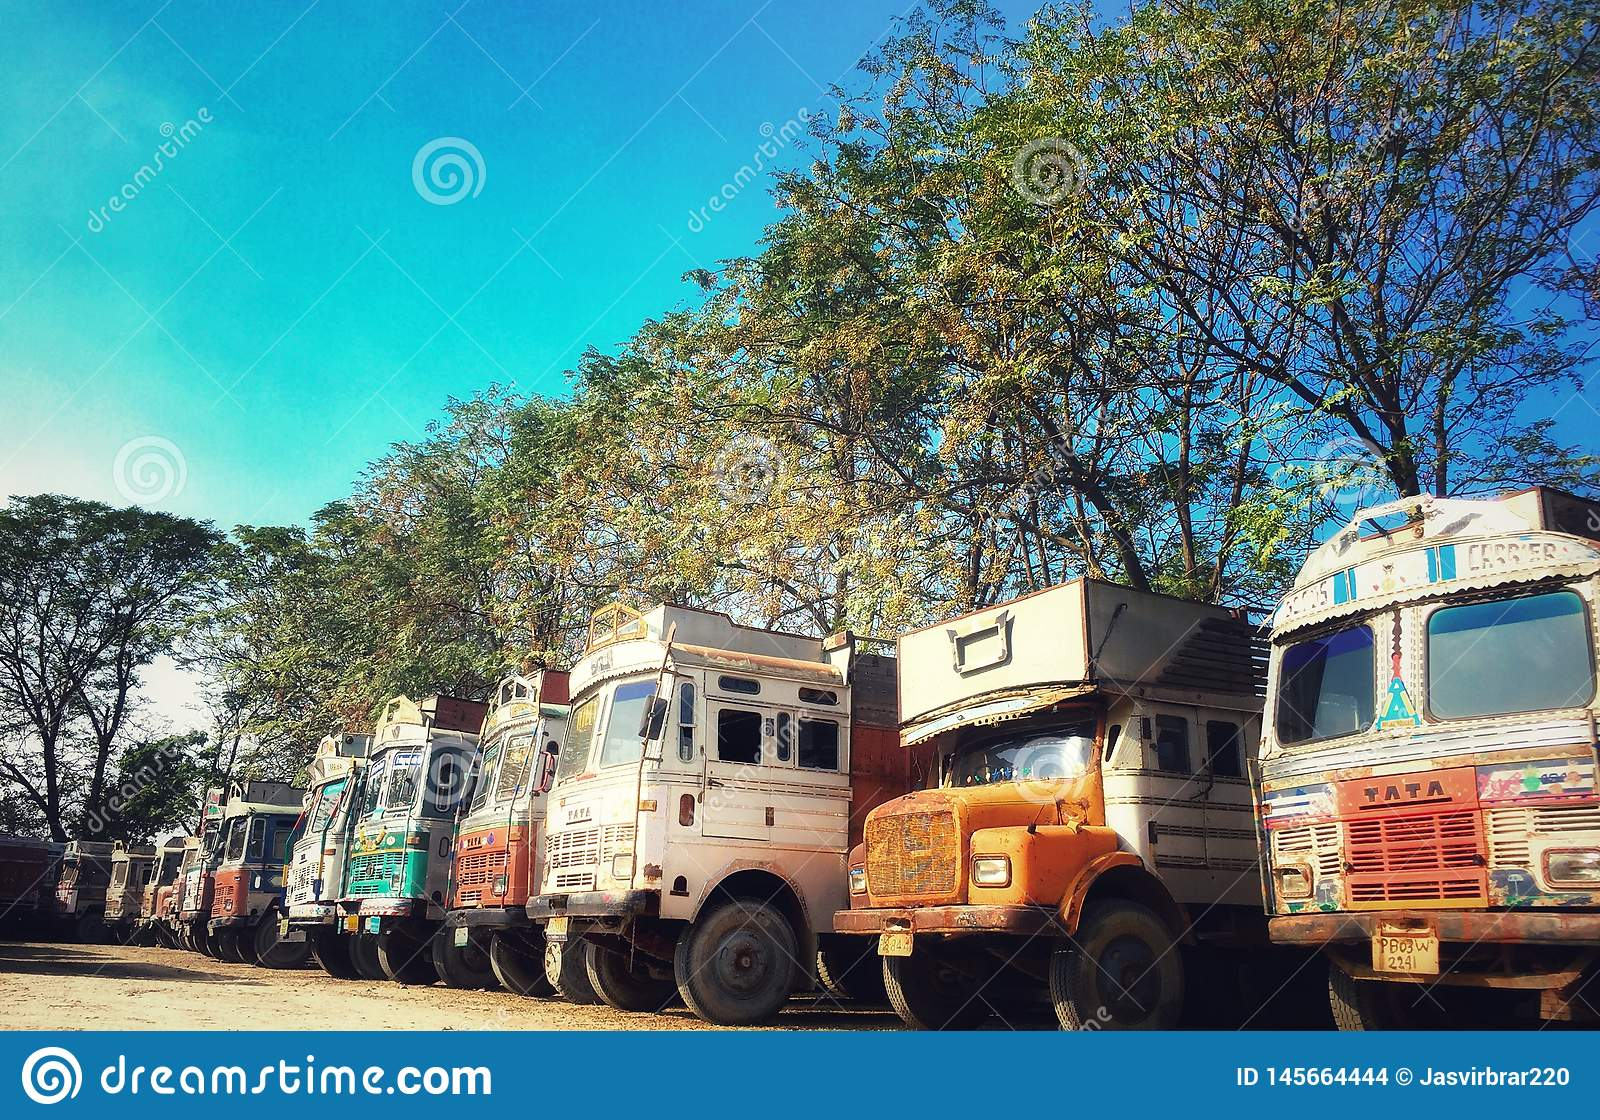 Indian trucks in truck union of india